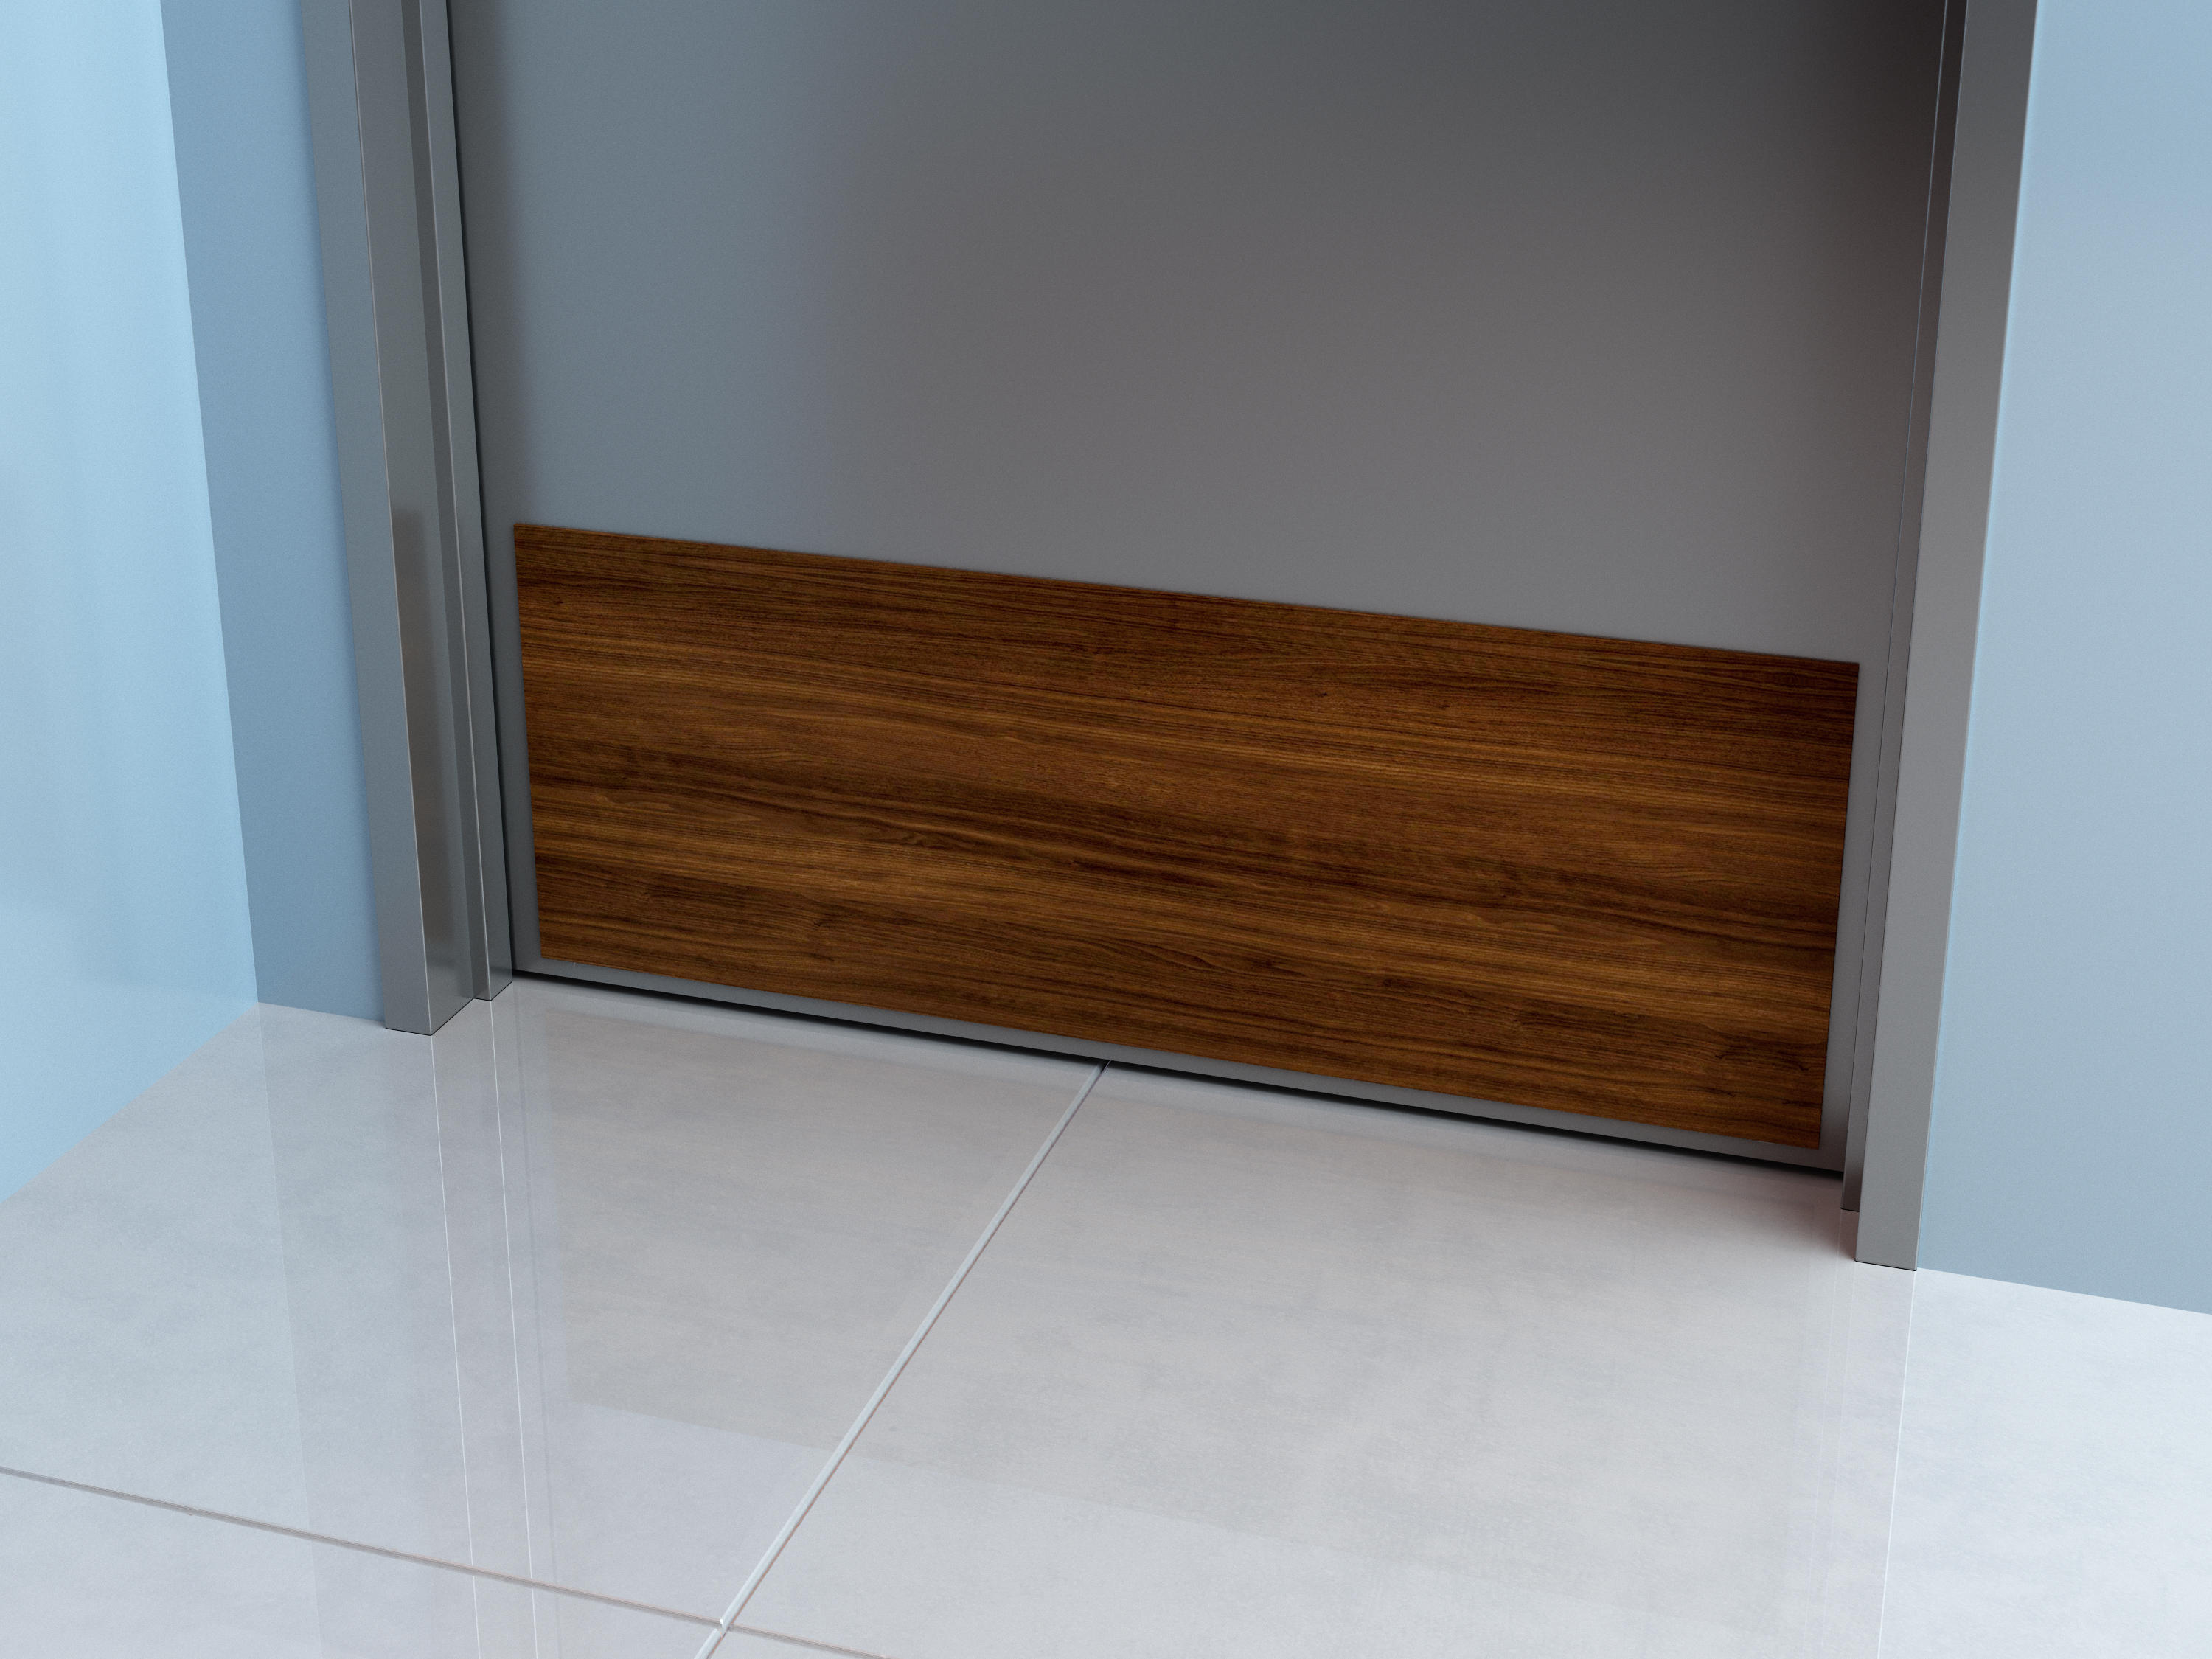 Decorative Door and Frame Protection